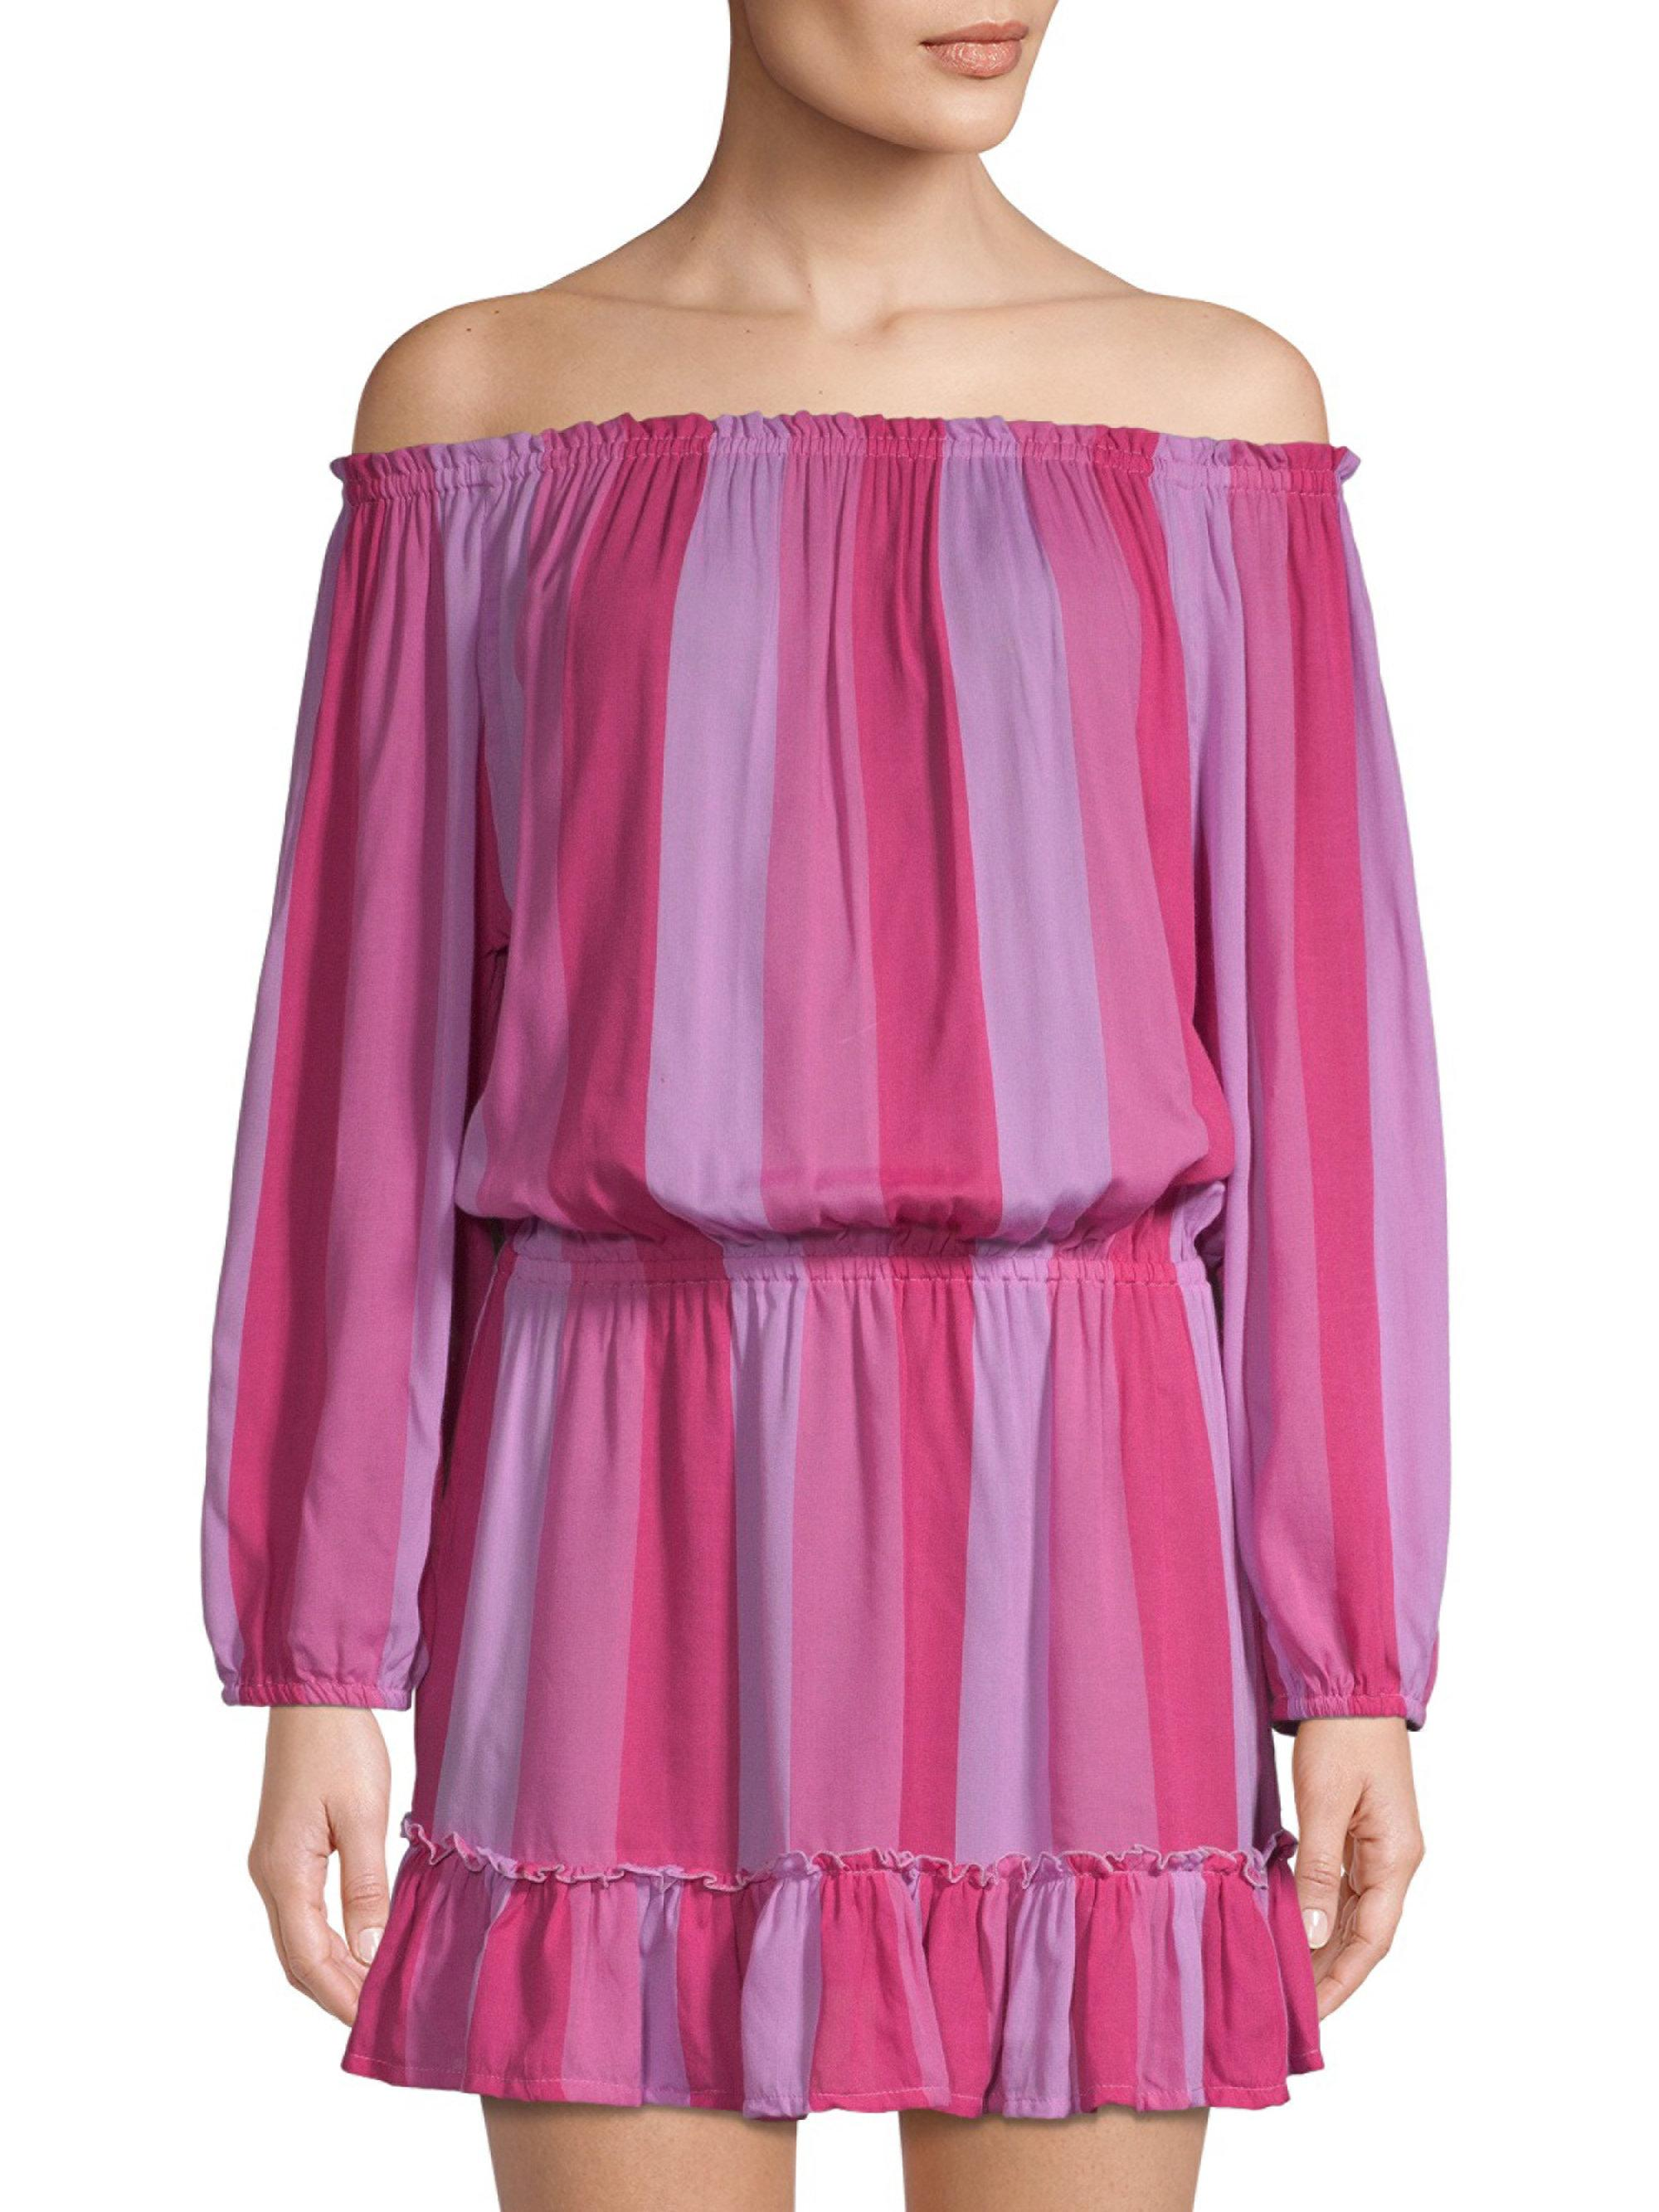 9acea6a99b58 Cool Change Madelyn Off-the-shoulder Tunic Dress in Pink - Lyst